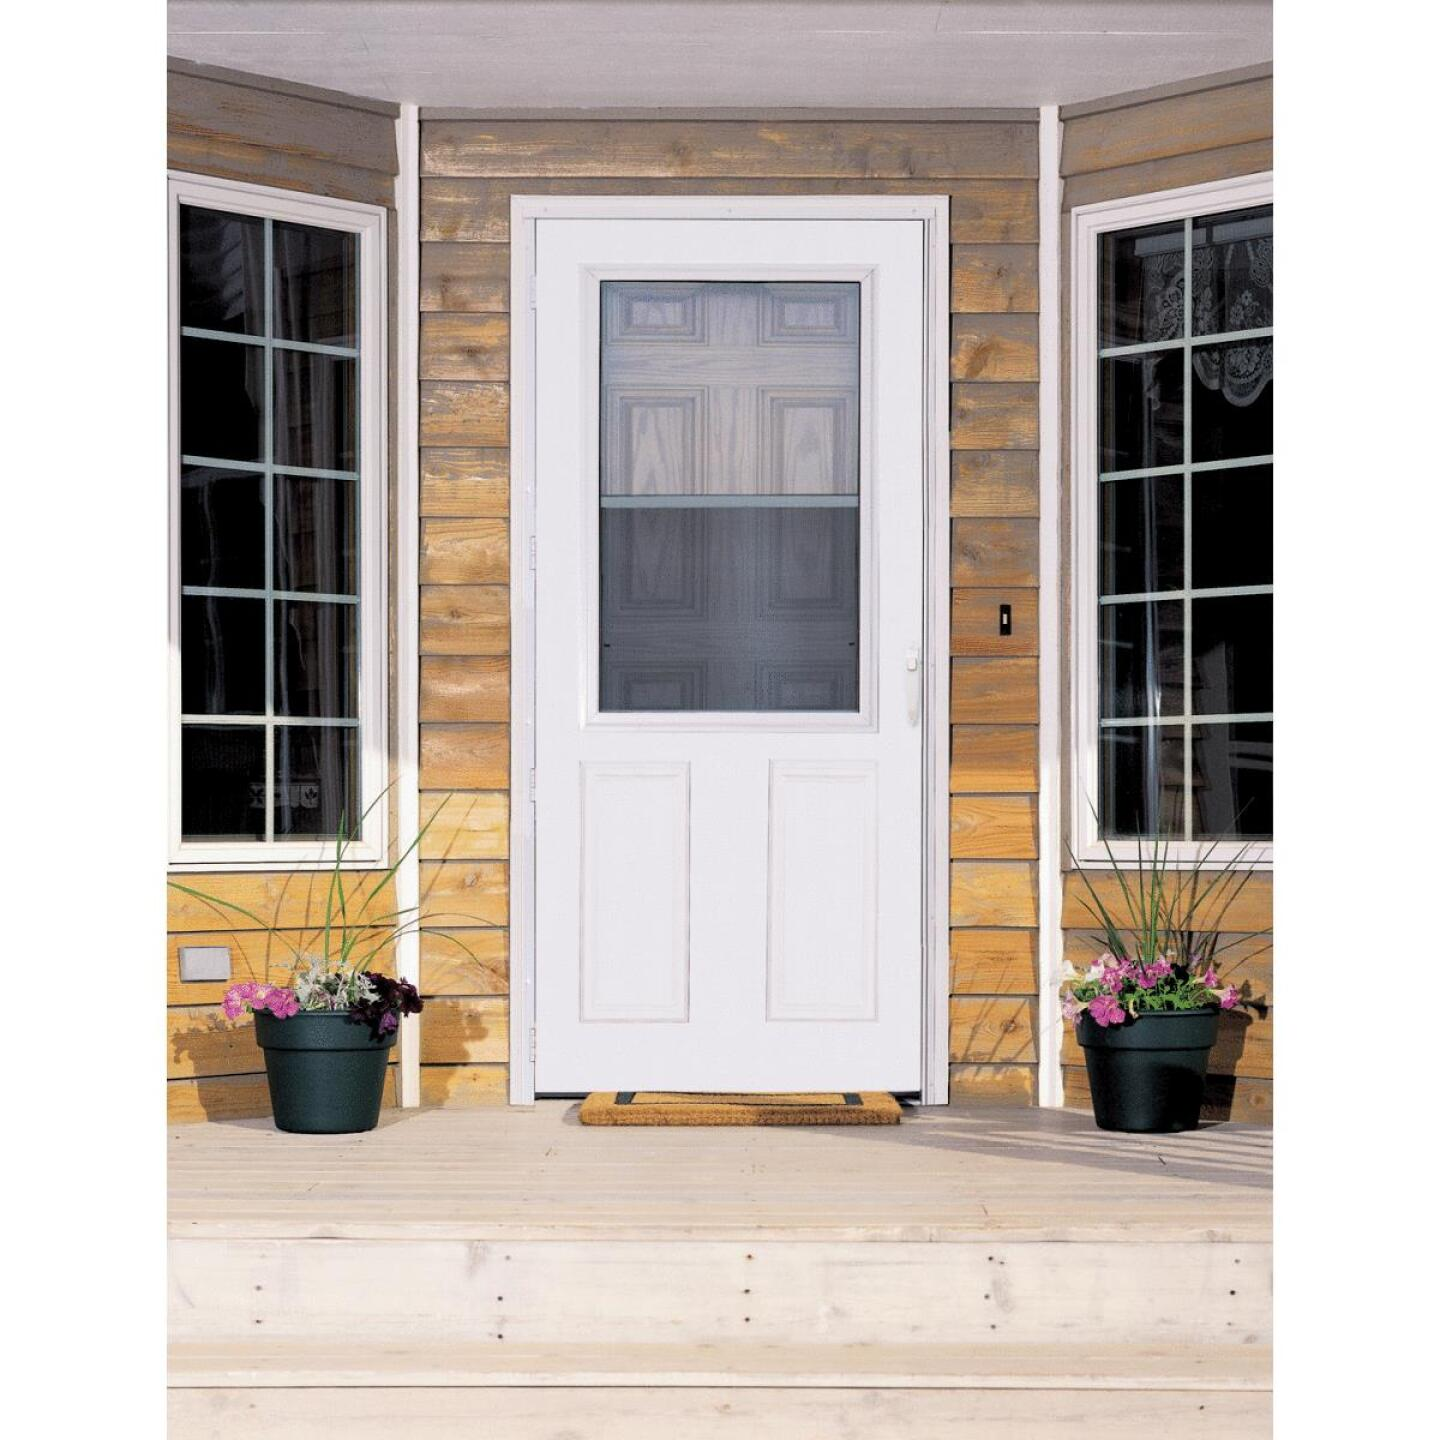 Larson Lifestyle MULTI-VENT 32 In. W x 80 In. H x 1 In. Thick White Mid View 2-Panel DuraTech Storm Door Image 2